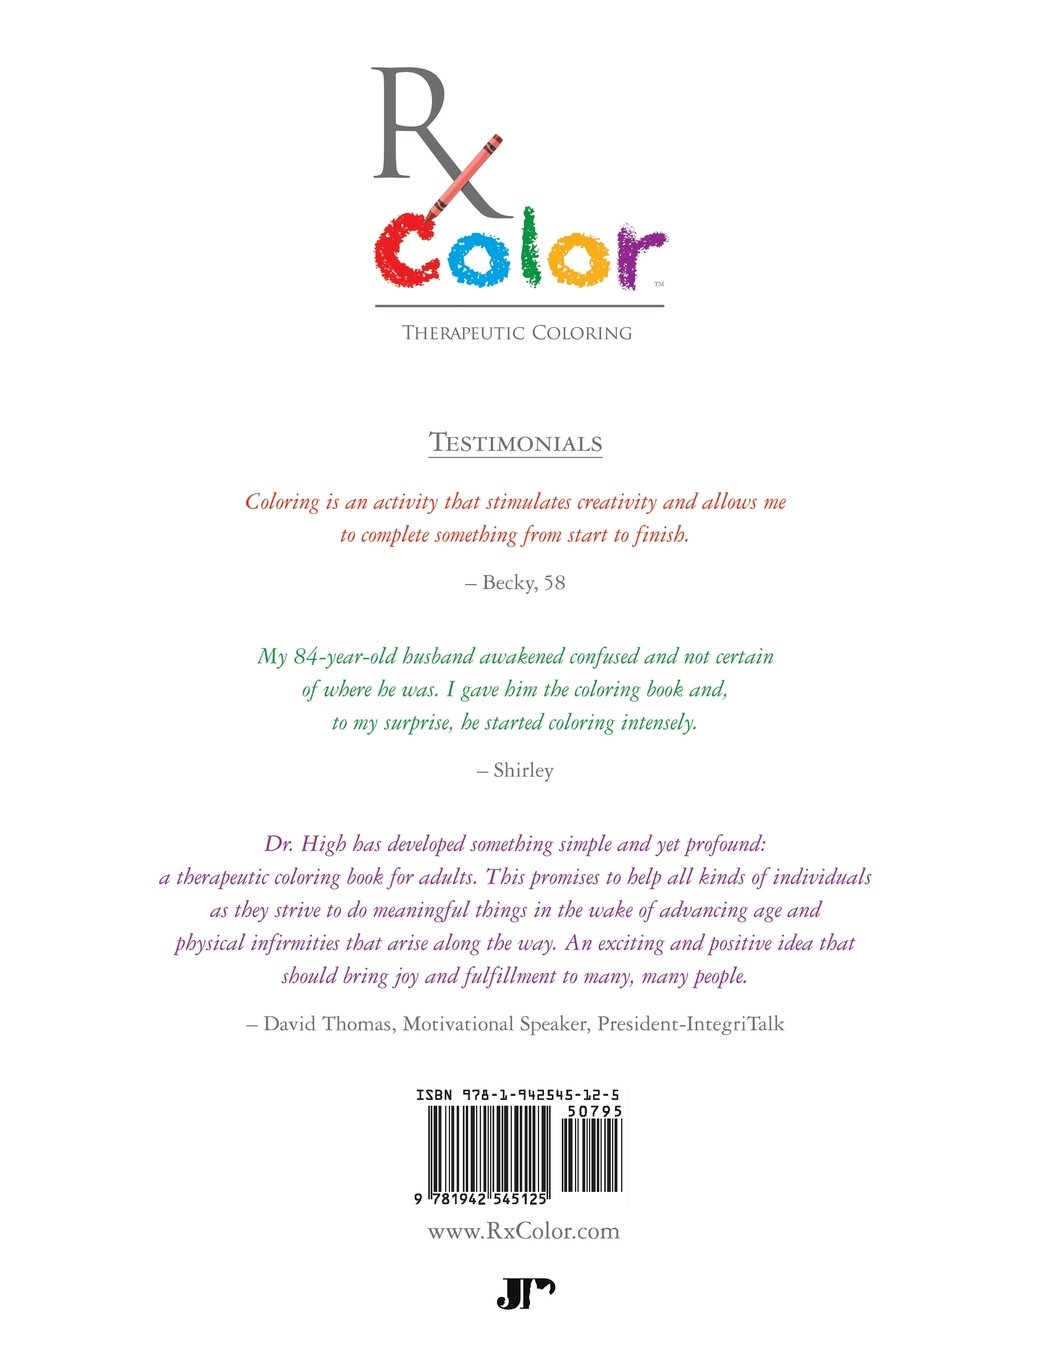 Anatomy coloring book for health professions - Rx Color Therapeutic Coloring Book For Adults Shyla T High 9781942545125 Amazon Com Books